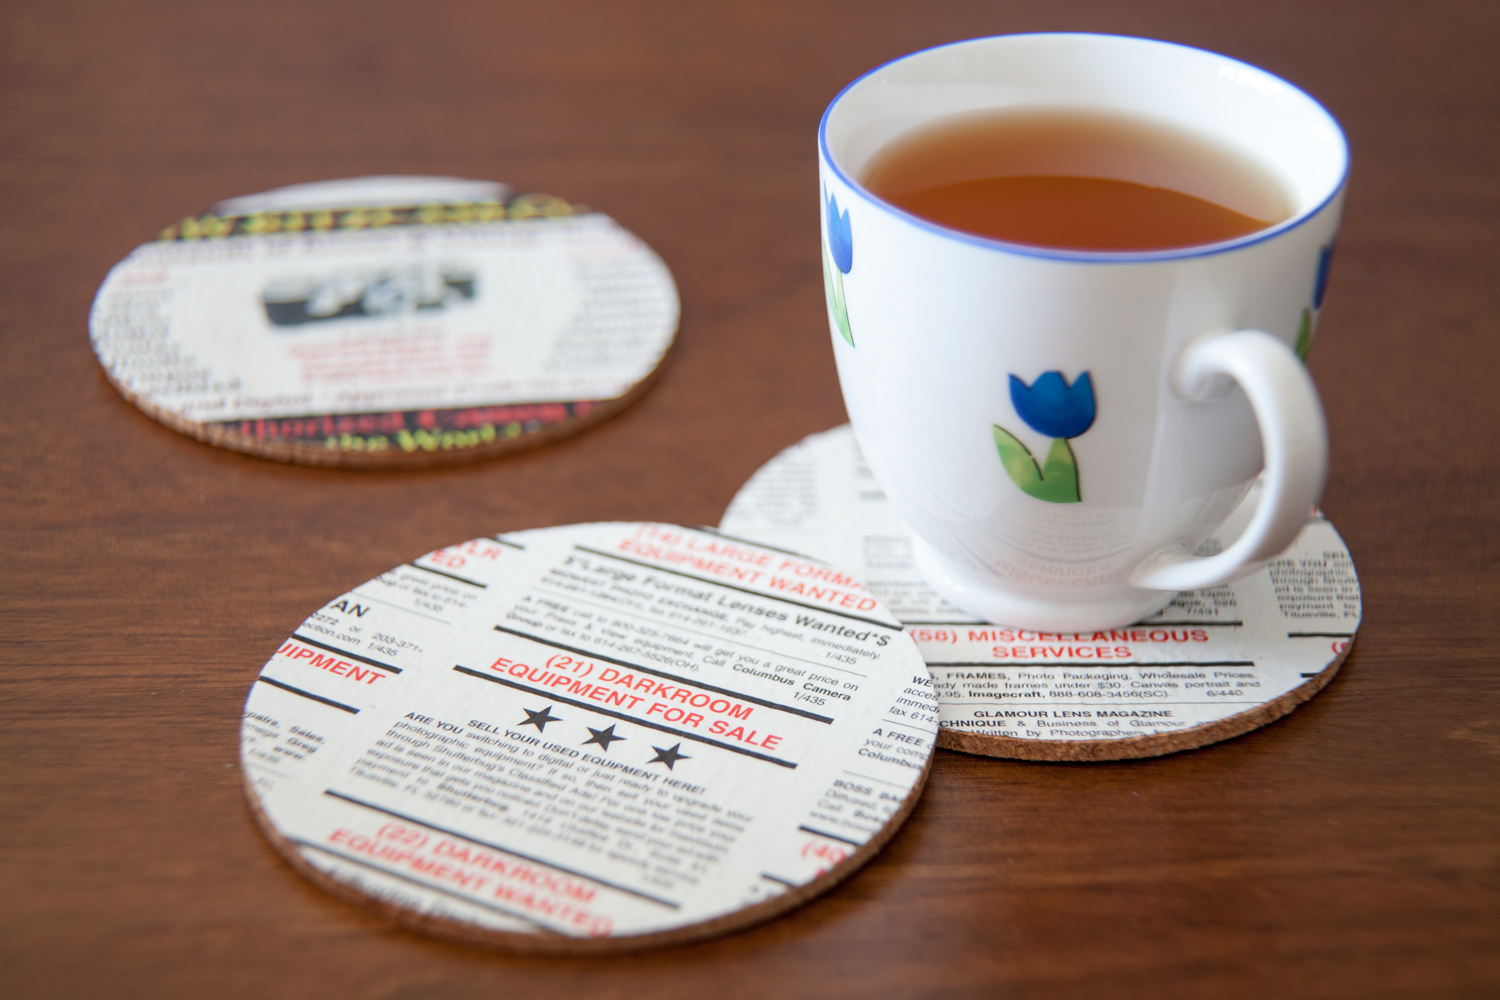 Two Ways to Transform Old Photography Magazines Into Coasters